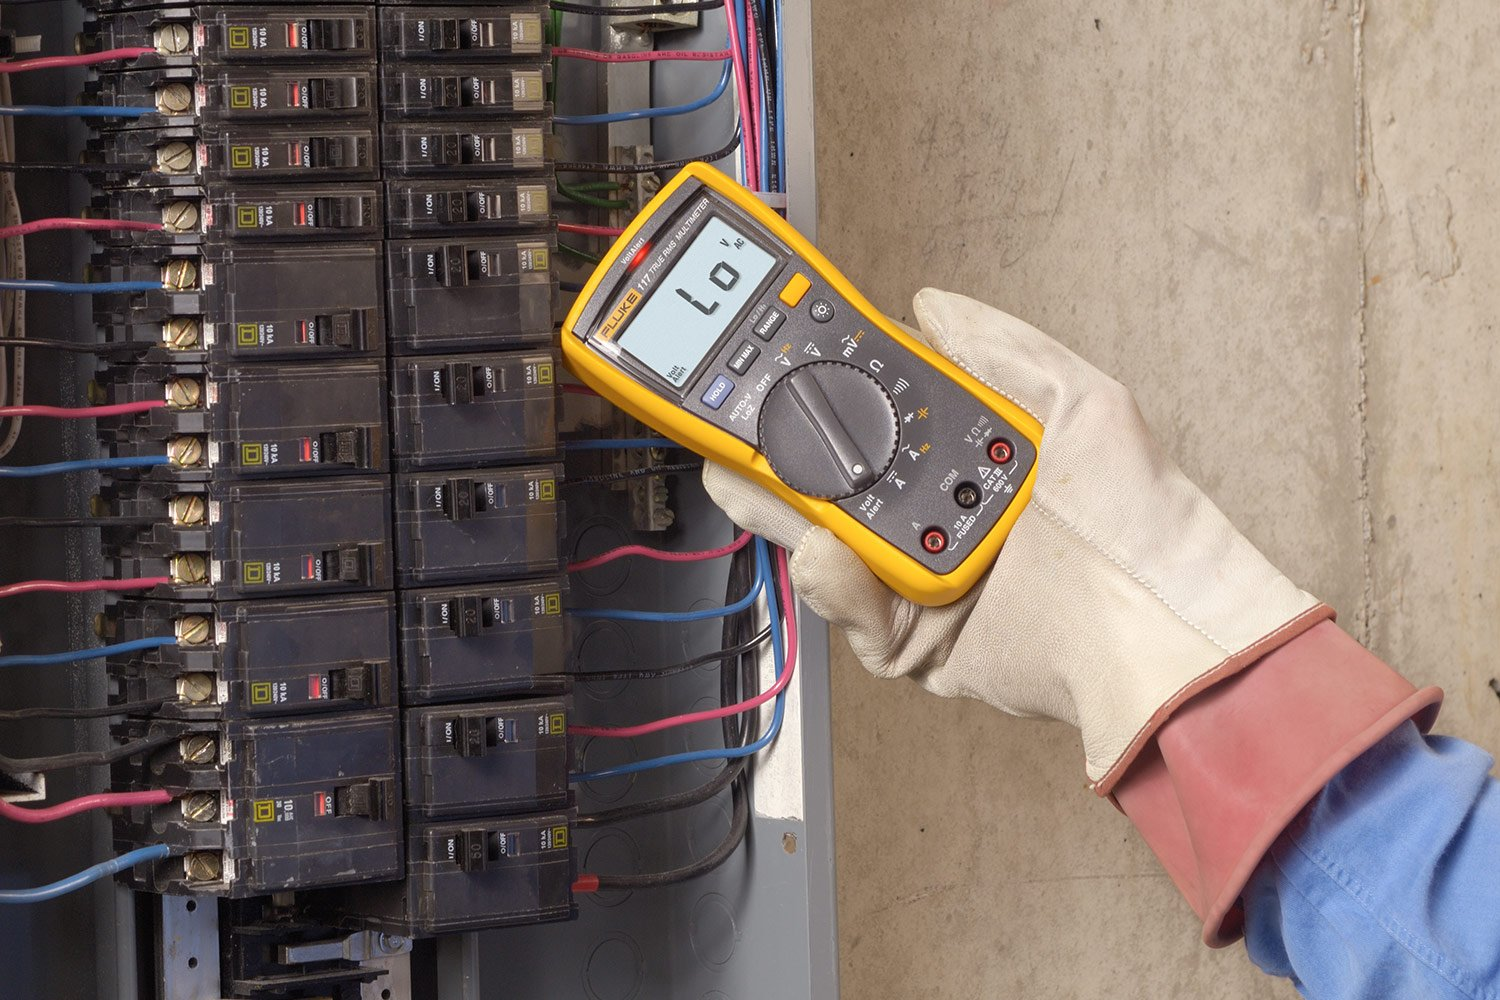 Fluke 117 Digital Multimeter Electrician's Multimeter with Non-Contact Voltage